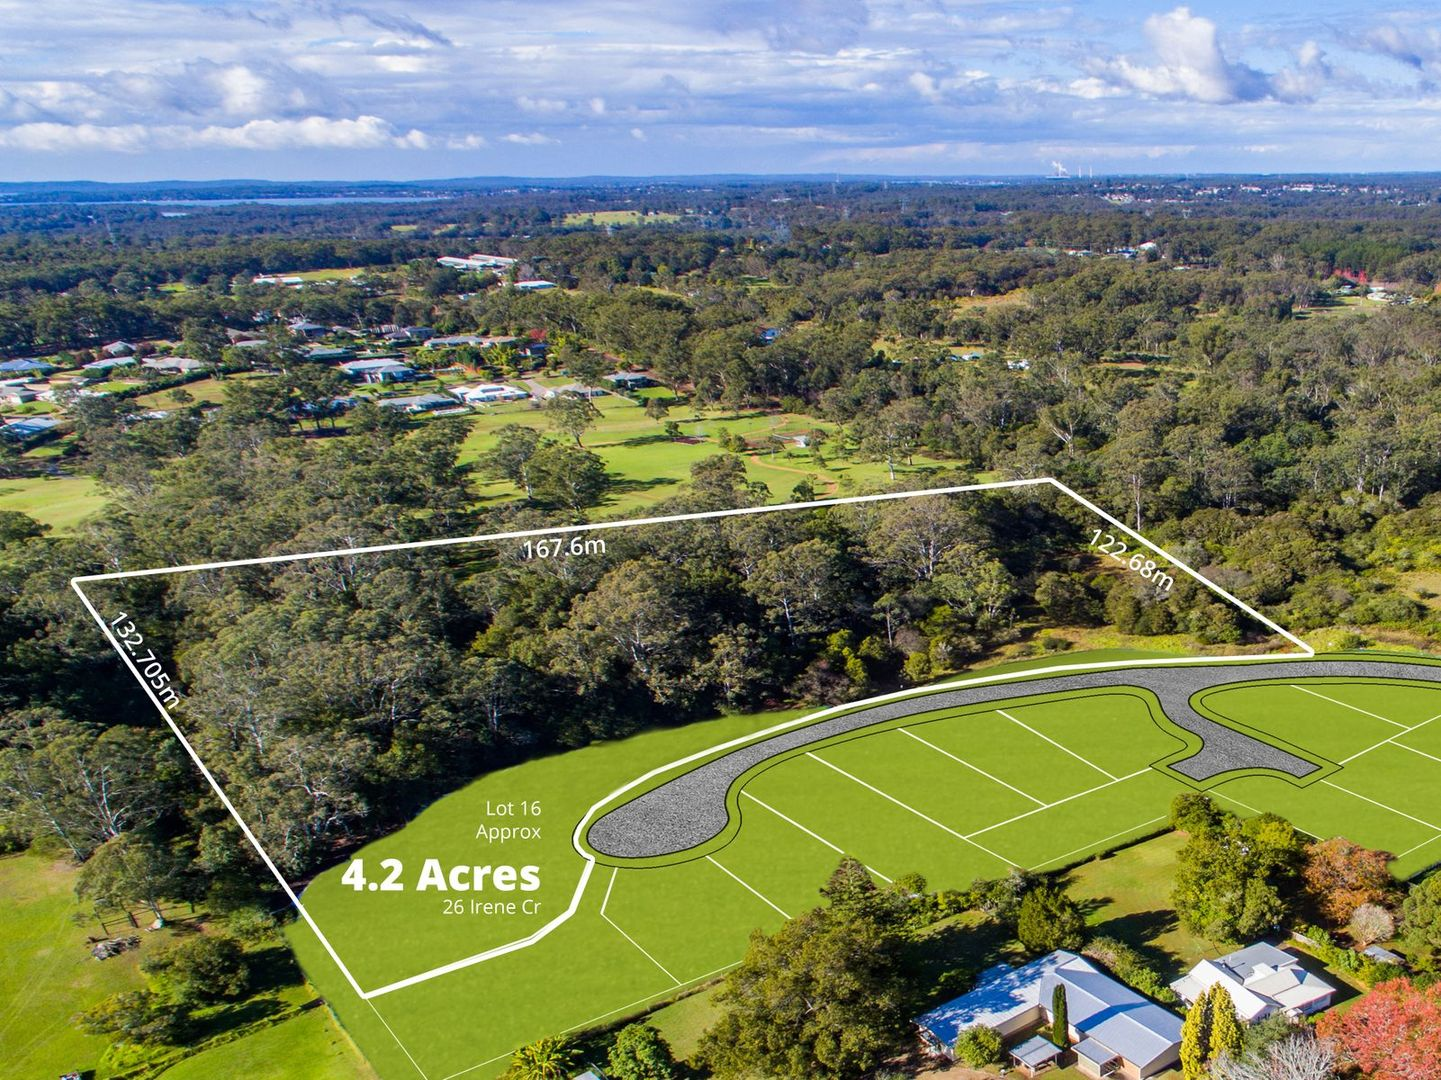 Lot 16/26 Irene Crescent, Cooranbong NSW 2265, Image 0